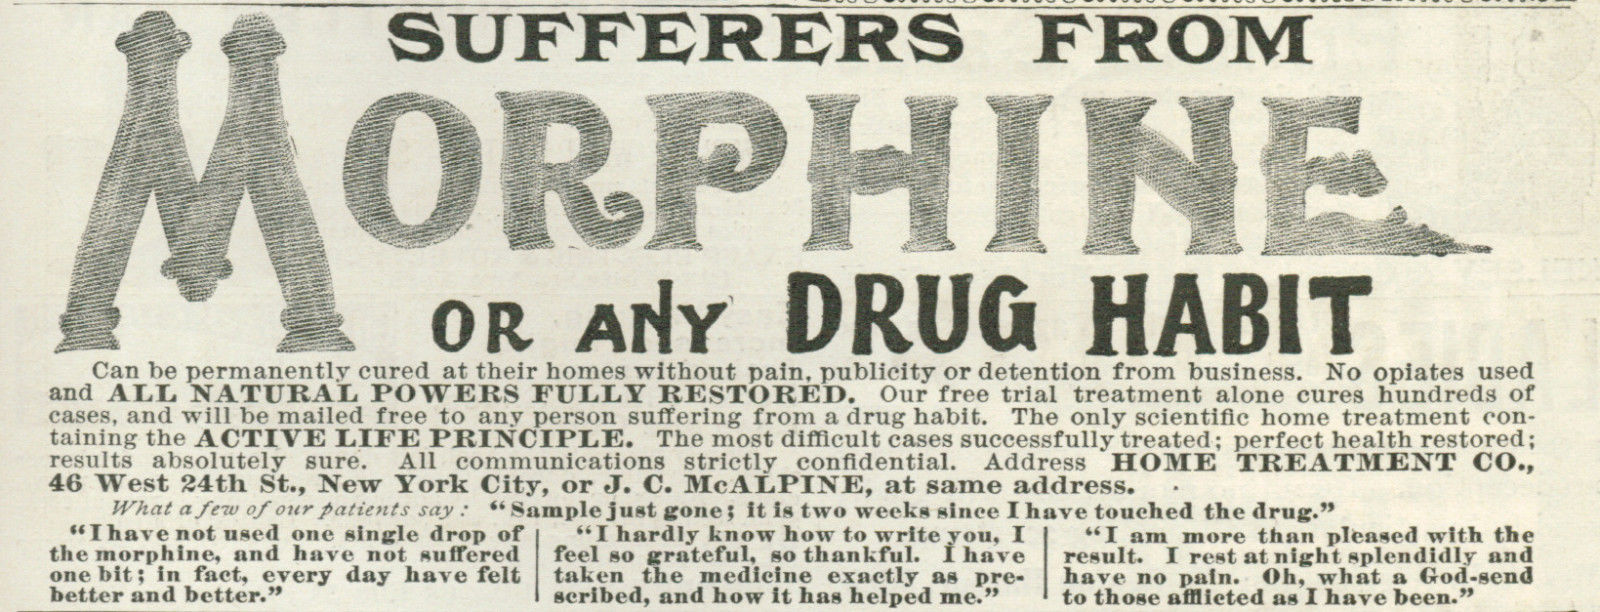 1899 Quack Medicine Sufferers From Morphine Or any Drug Habit Vintage Original Print Ad